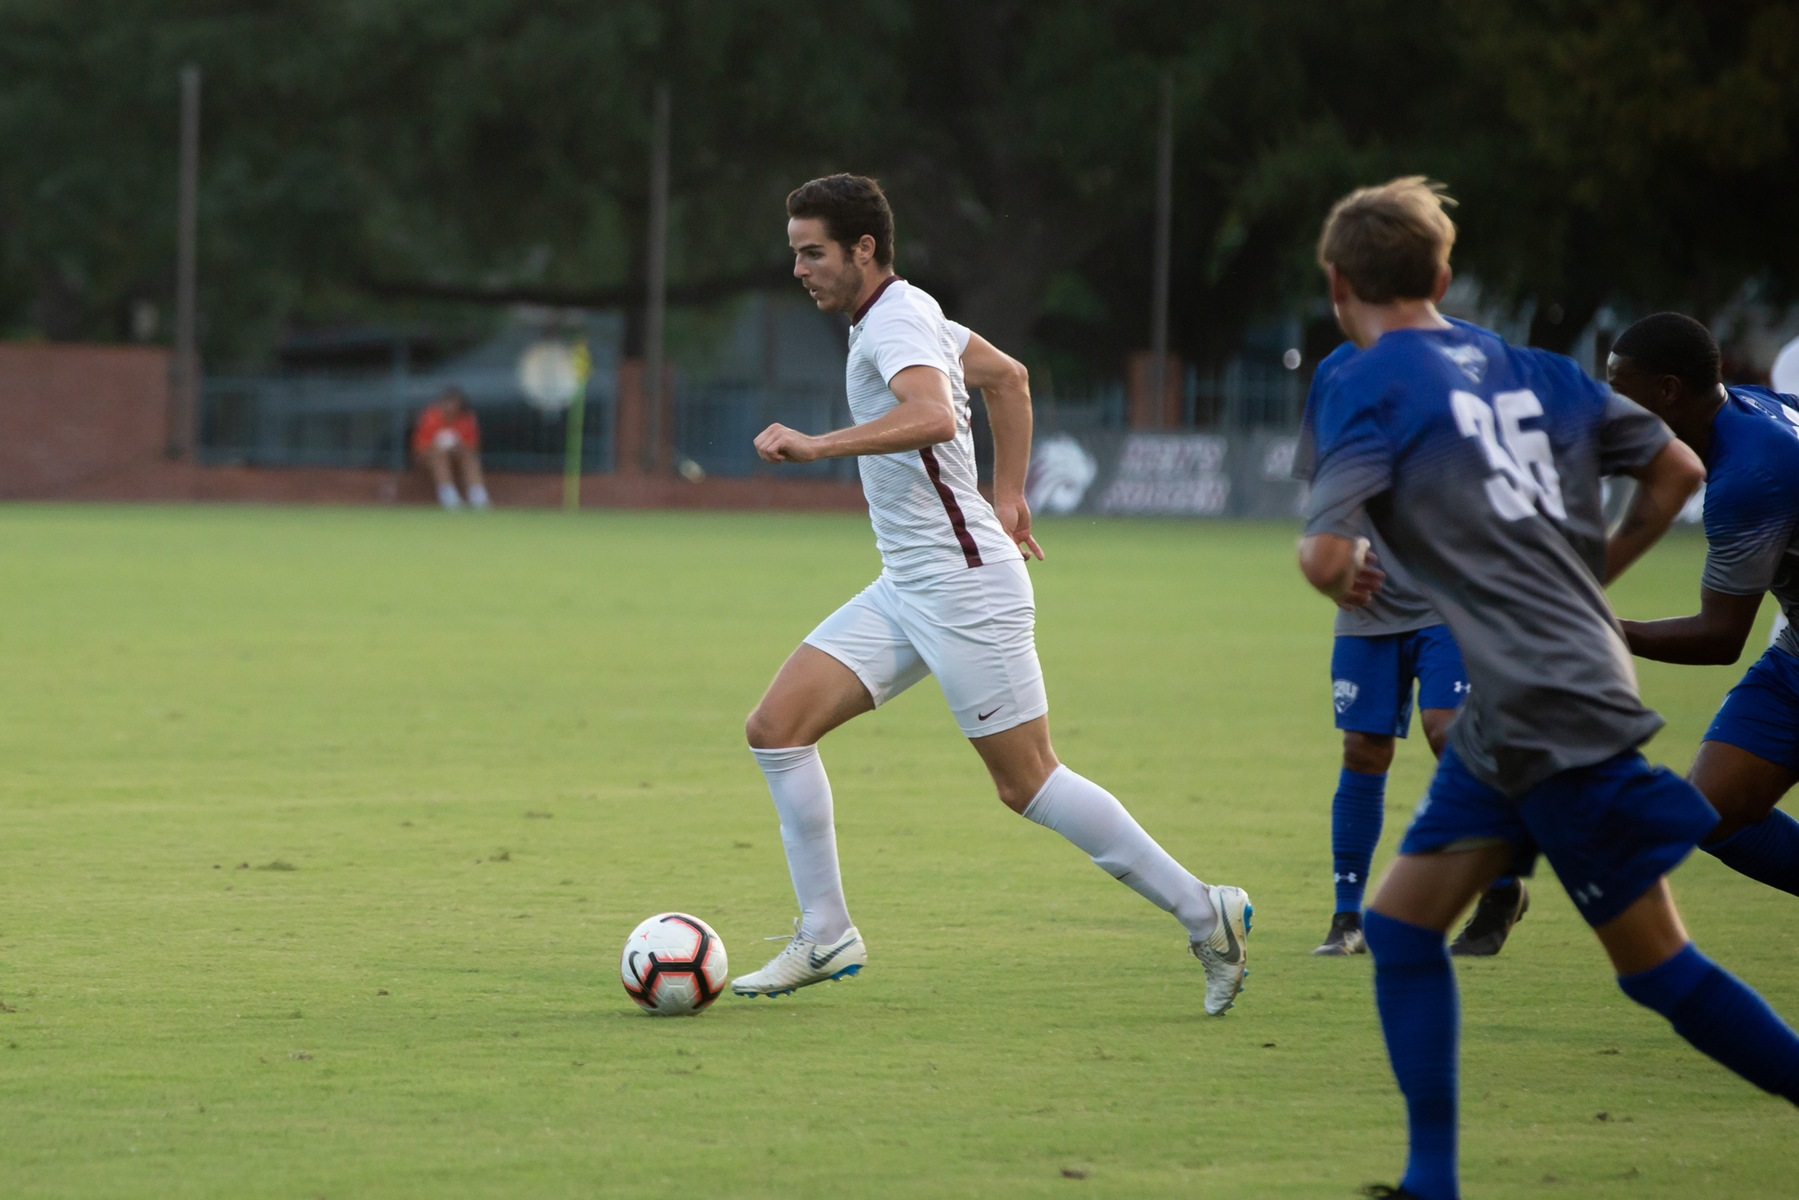 Trinity Equalizes Late to Earn 1-1 Tie With Christopher Newport